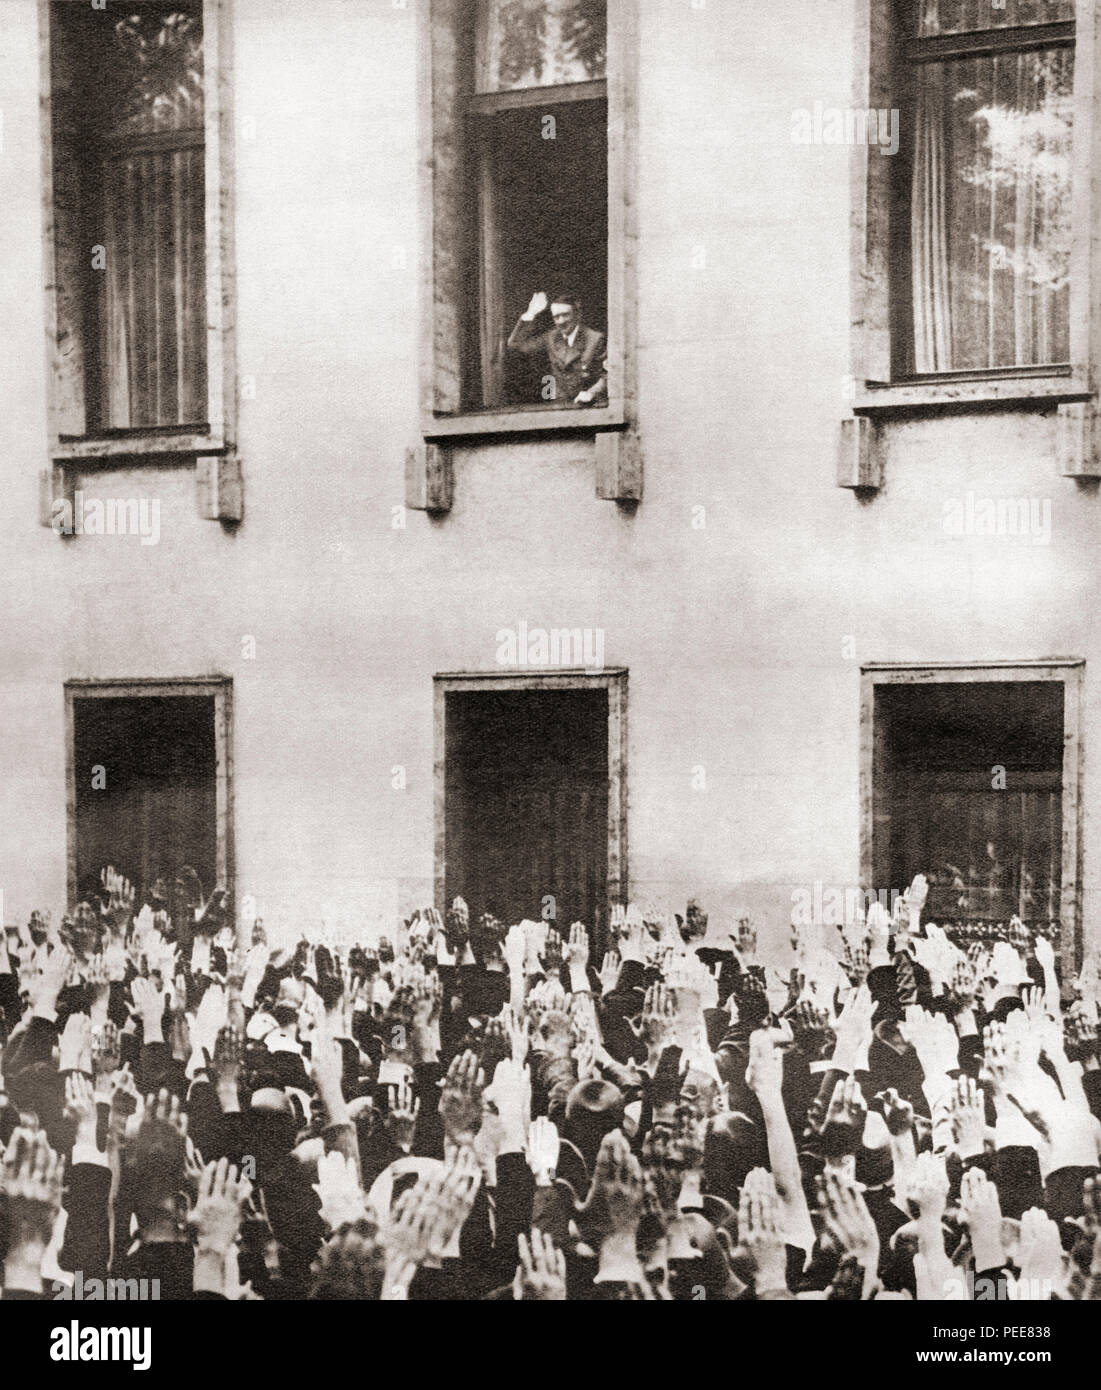 Germans cheering Hitler on hearing the news of his election as chancellor in 1933.  Adolf Hitler, 1889 – 1945.  German politician, demagogue, Pan-German revolutionary, leader of the Nazi Party, Chancellor of Germany (1933-1945) and Führer ('Leader') of Nazi Germany (1934 - 1945).  From These Tremendous Years, published 1938. - Stock Image